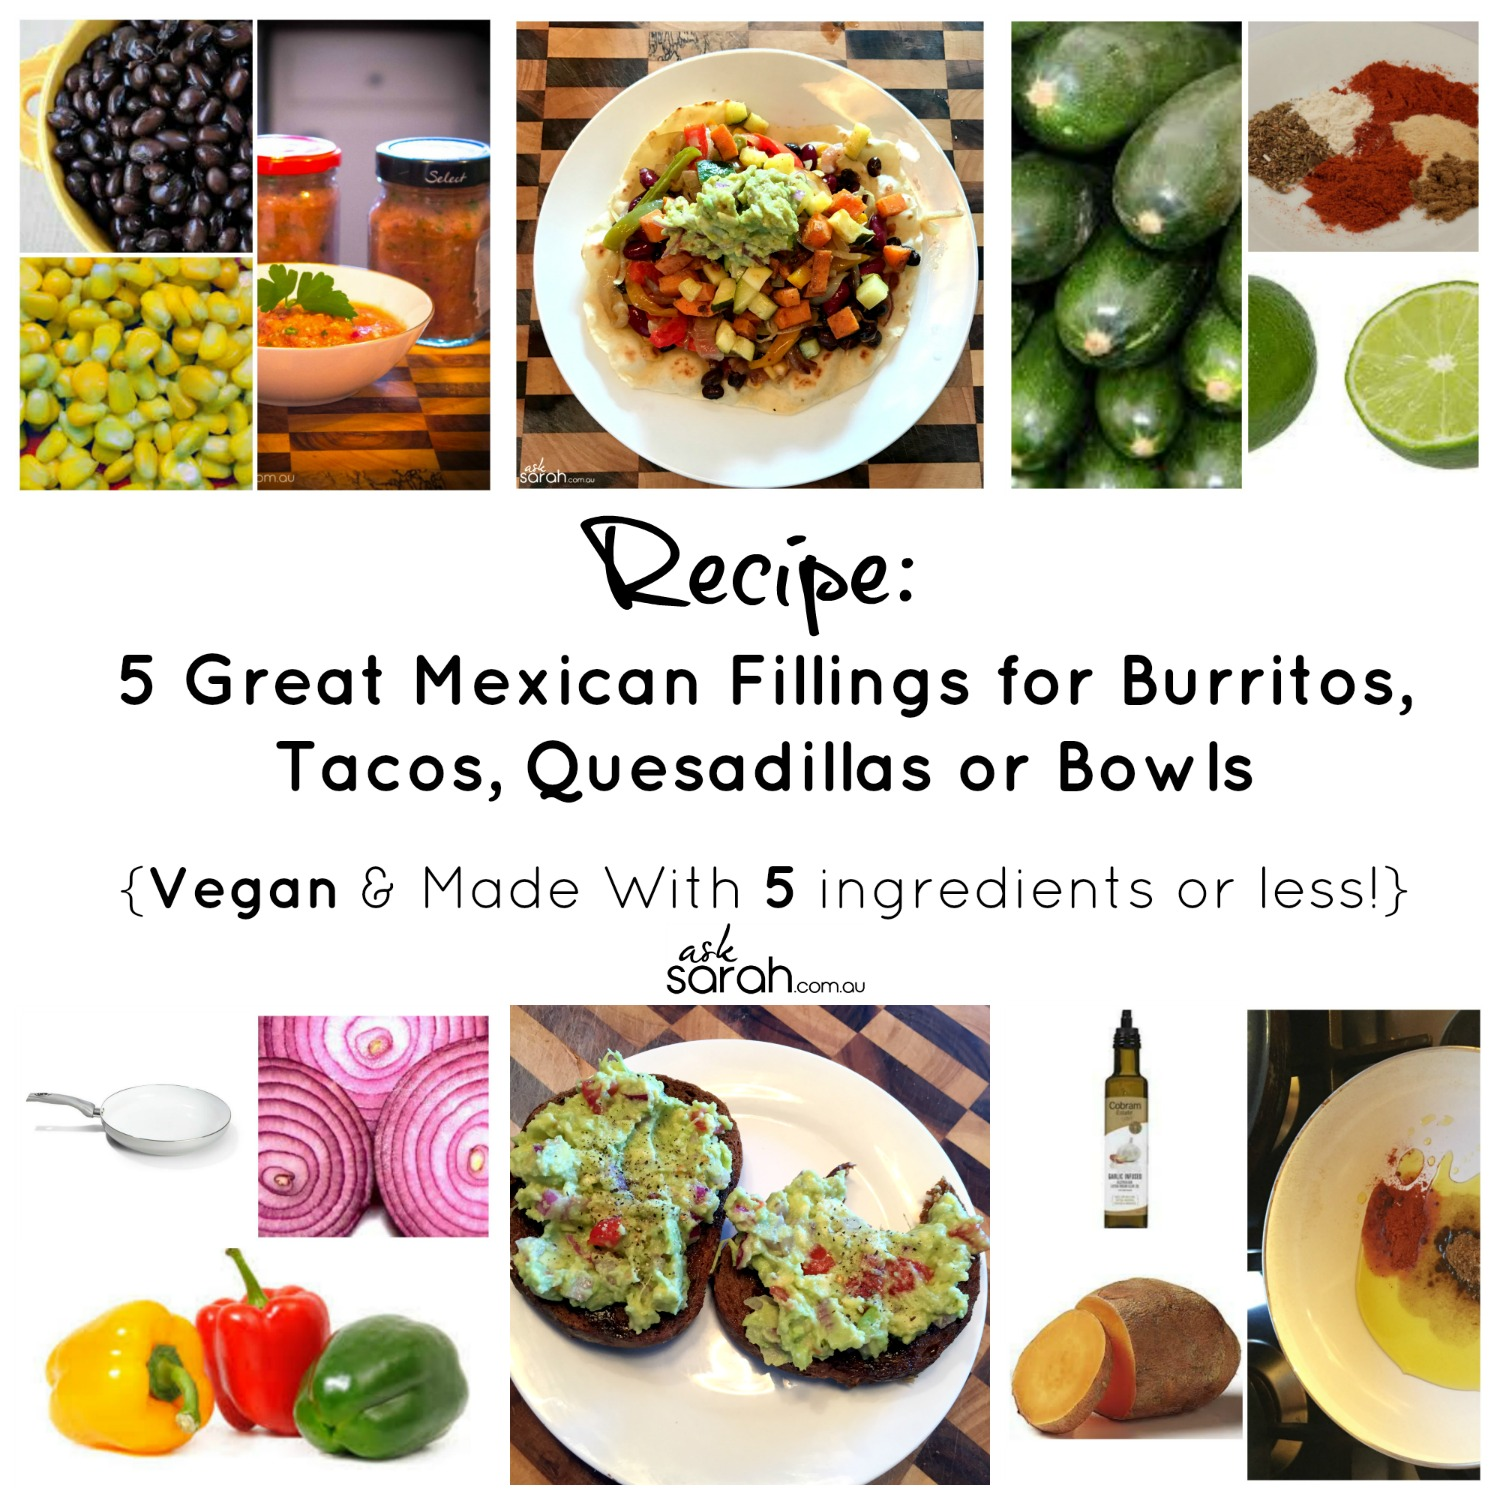 Recipe: Five Great Mexican Fillings for Burritos, Tacos, Quesadillas or Bowls {Vegan & Made With Five ingredients or less!}